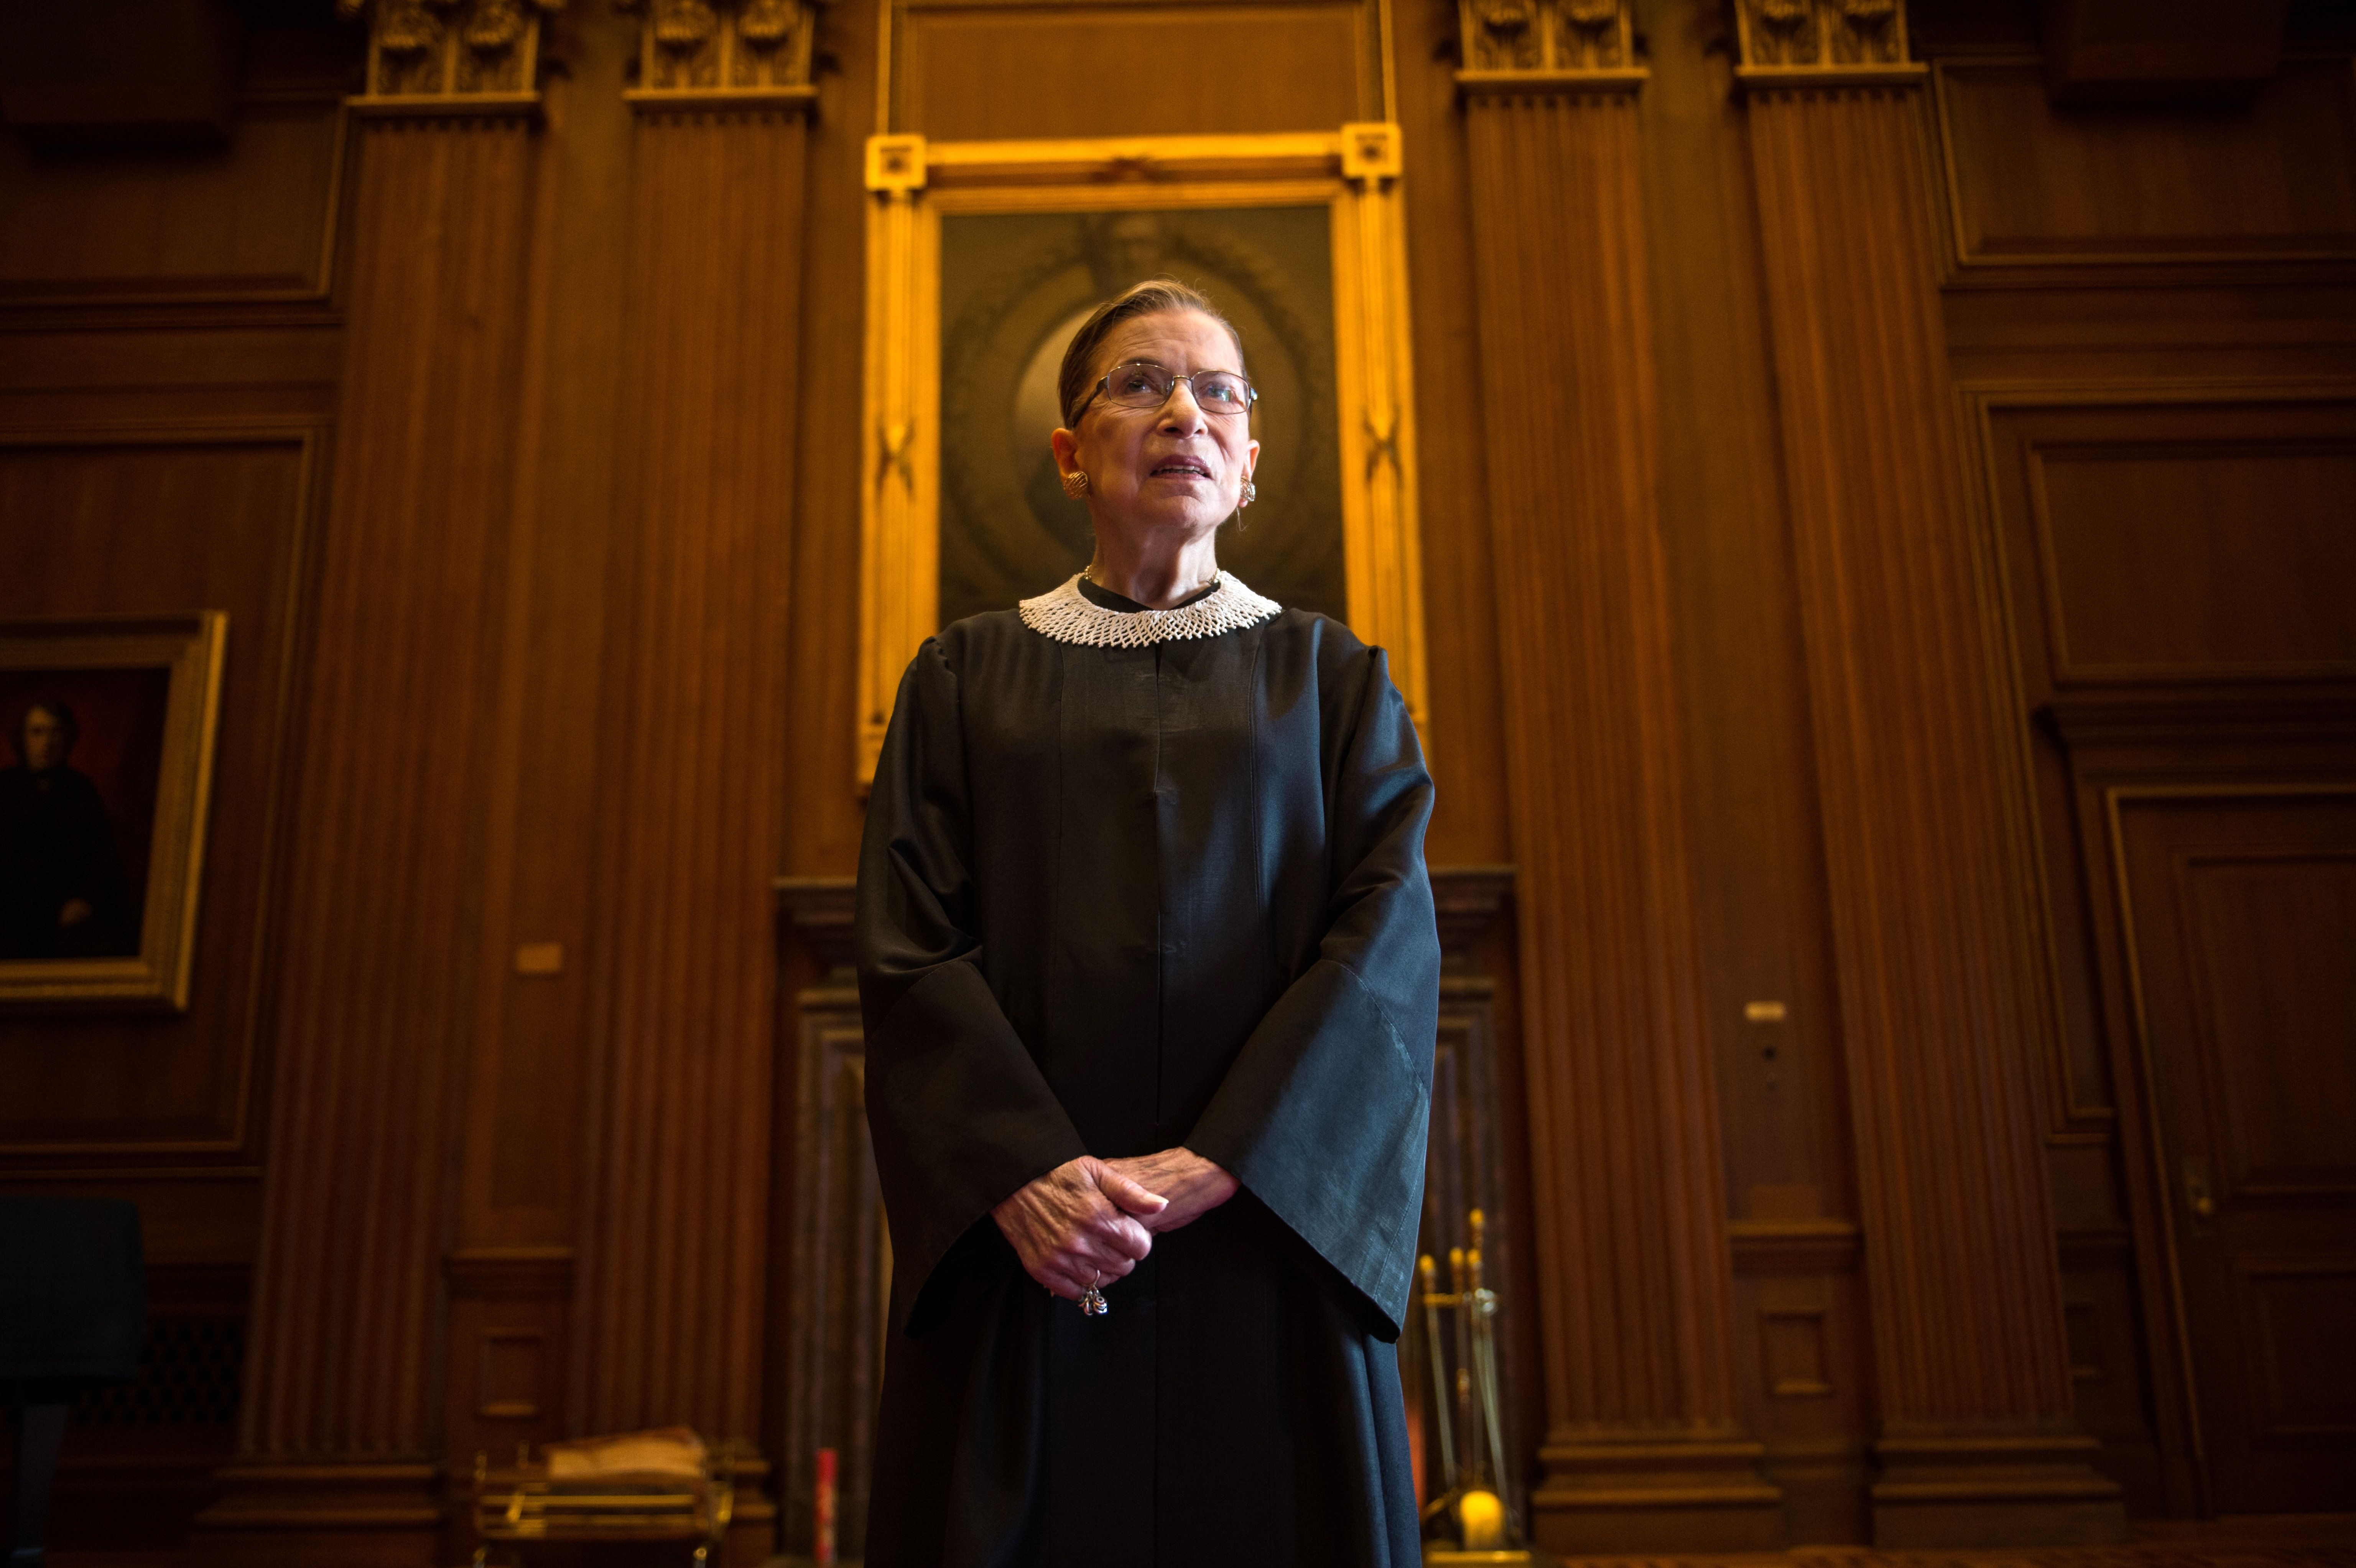 Justice Ruth Bader Ginsburg was full of sharp questionsat Wednesday's oral arguments in Whole Woman's Health v. Hellers